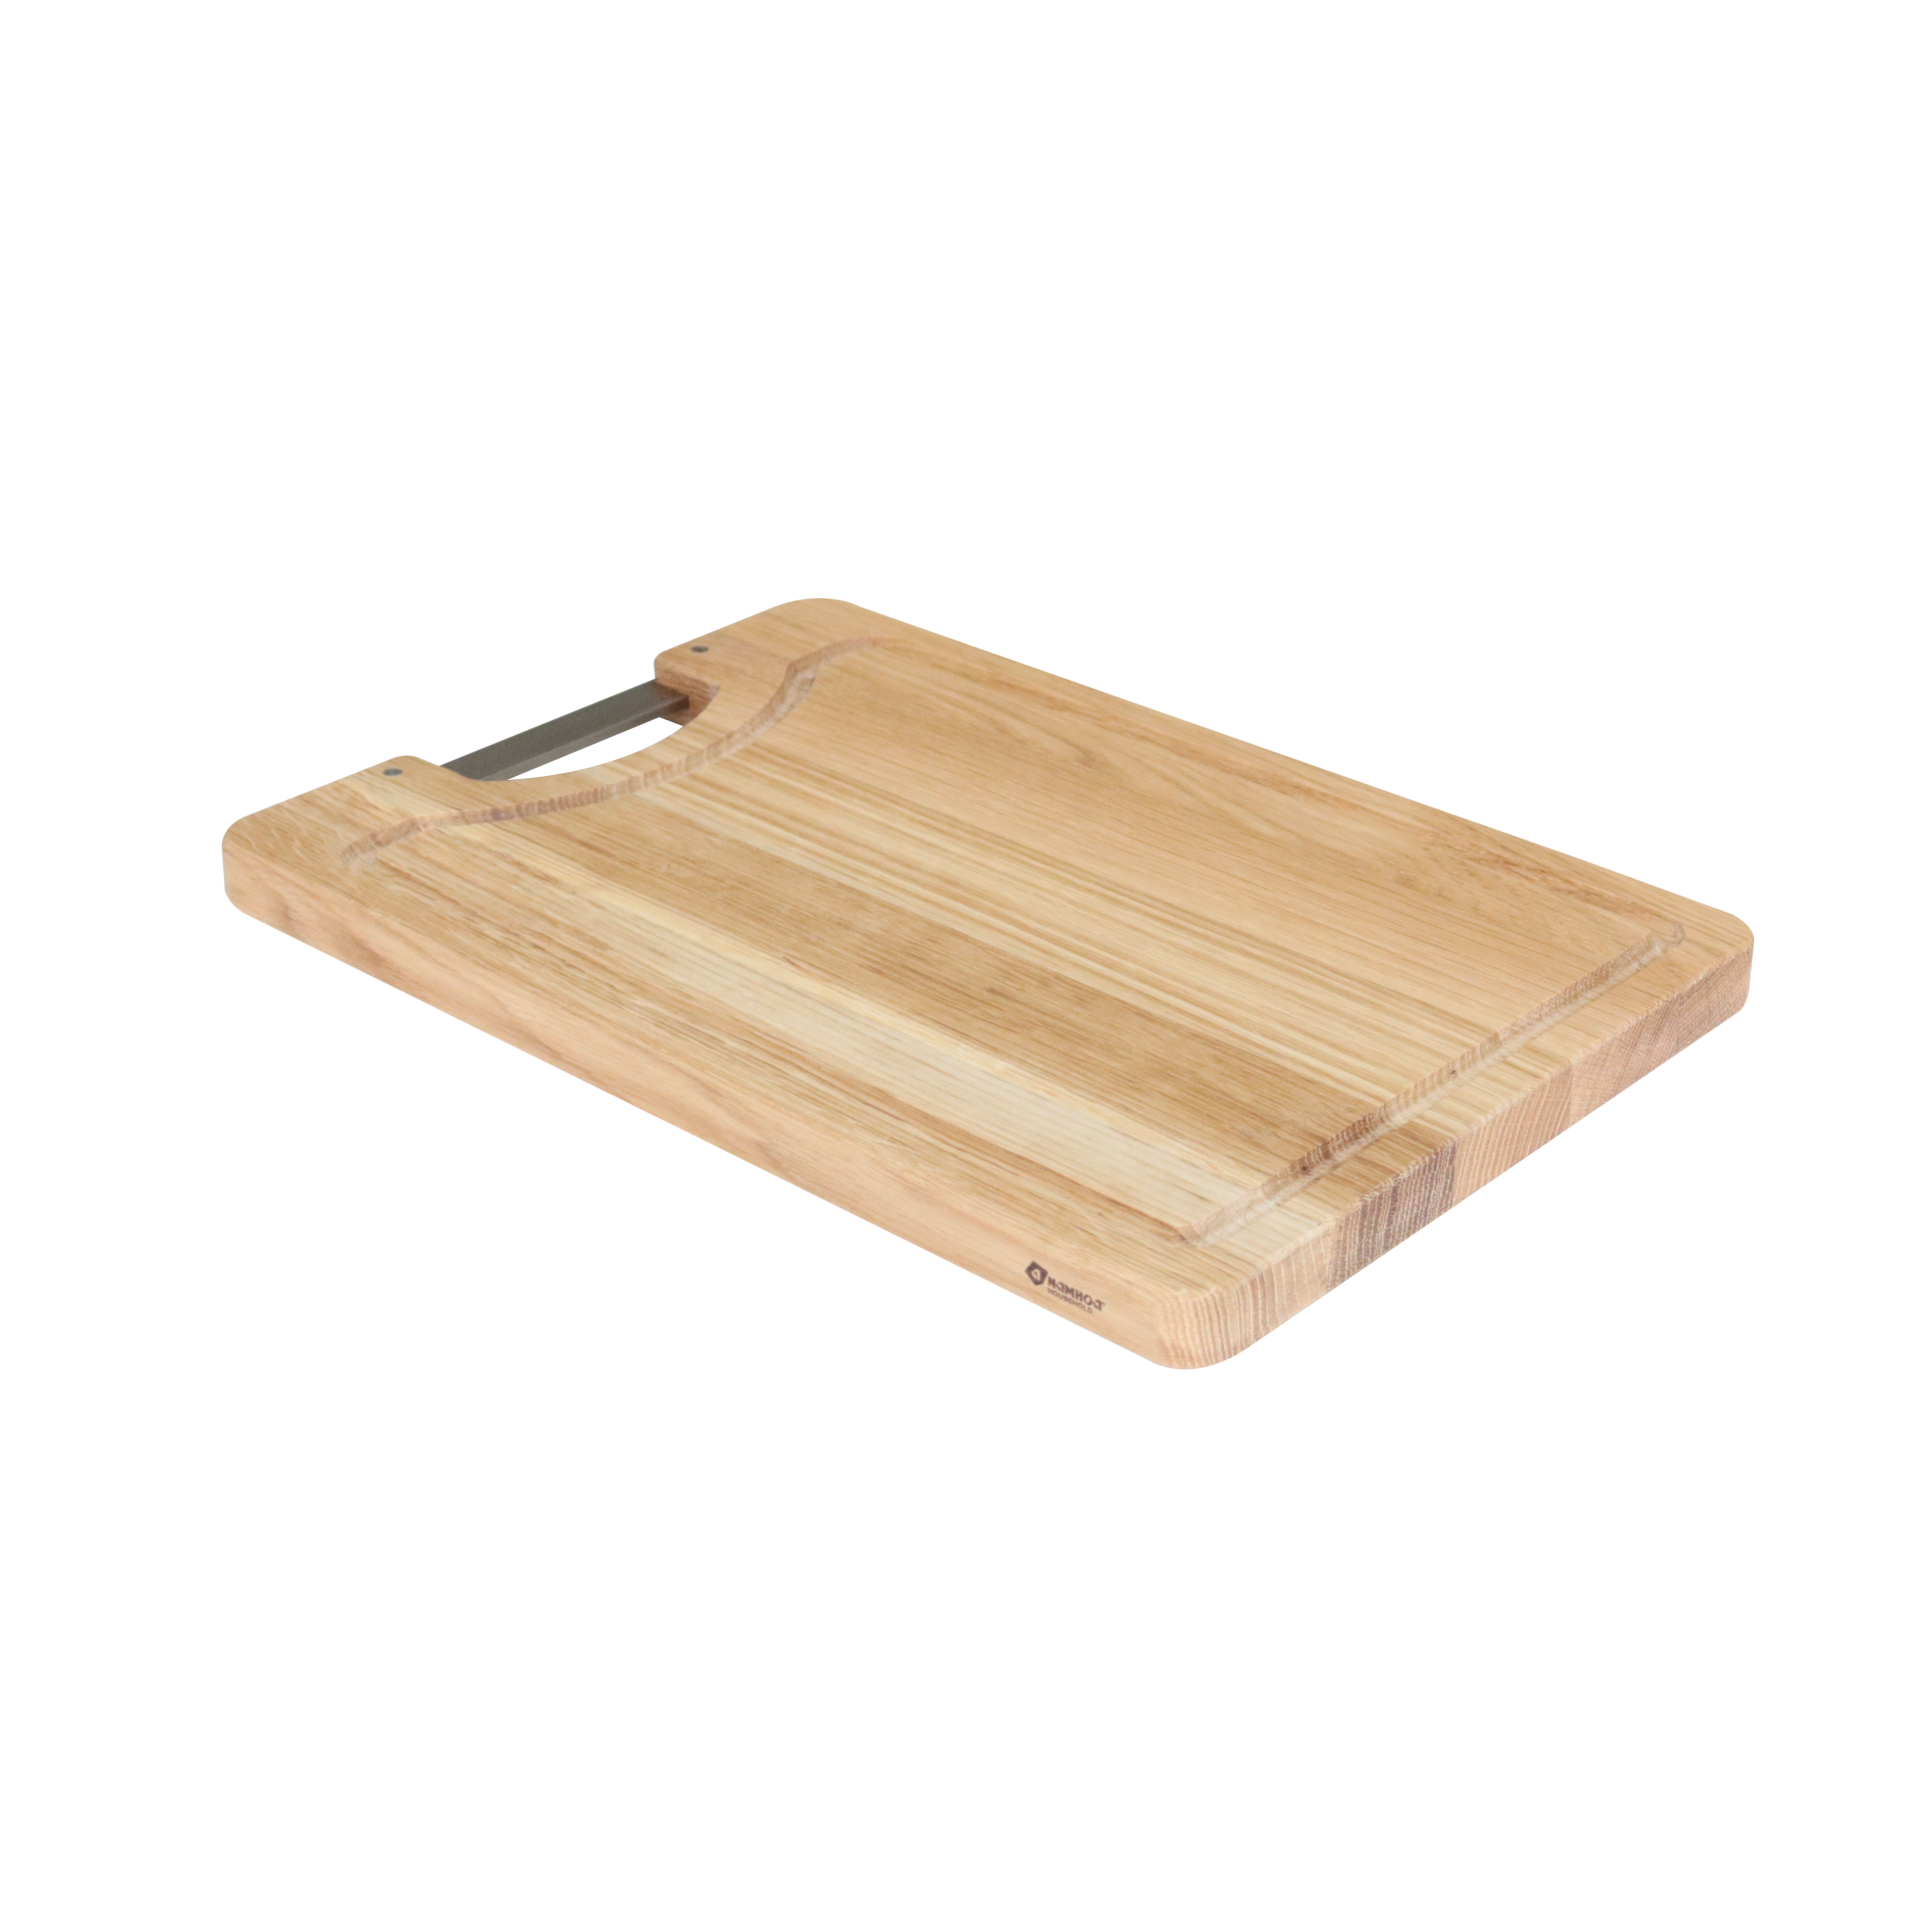 Strive rectangle White Oak Cutting board with inox handle